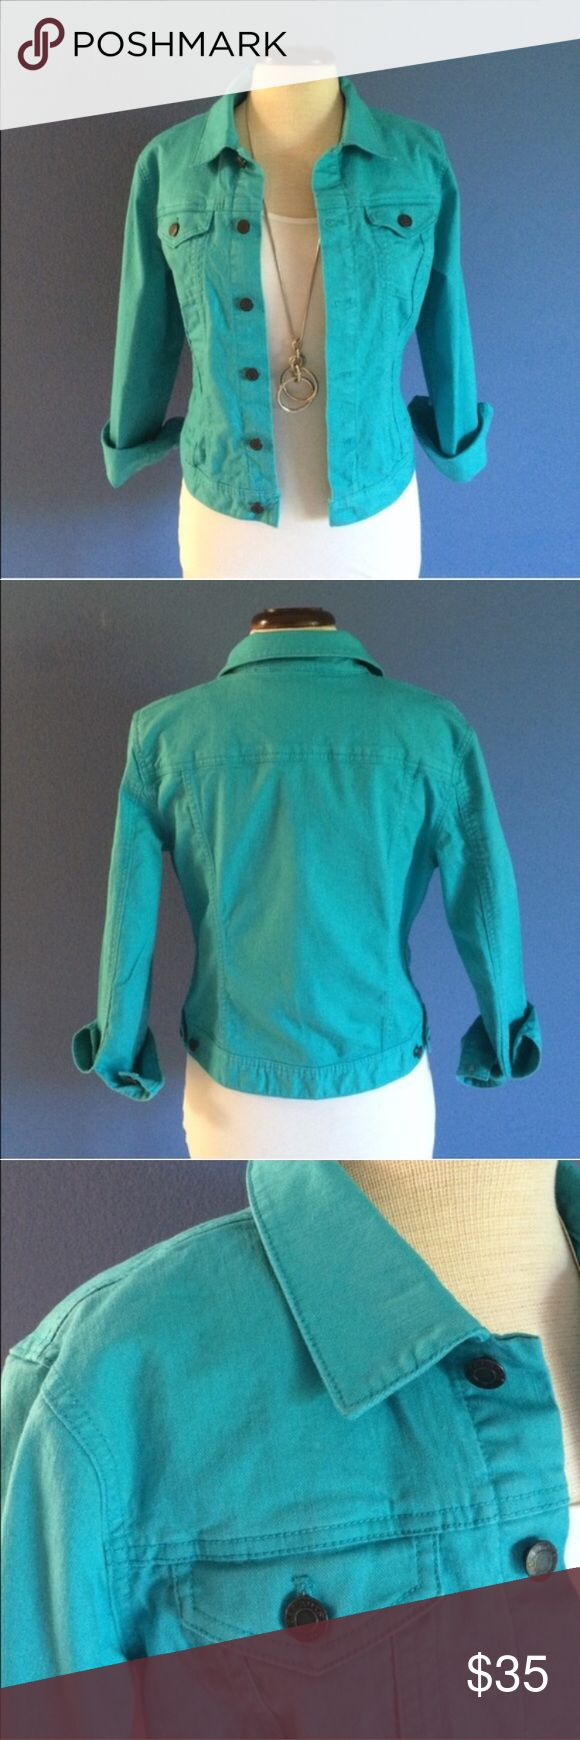 """Talbots Turquoise Jean Jacket A jean bracket is a staple in every closet. However,this one makes a statement of its own!  Add a little color to your wardrobe.  Sleeves come down to the wrist (rolled up in the picture.). This jacket looks great with everything. Pair with white pants, skirt or capris for a bold look. Material:  98% Cotton/ 2% Spandex.  Measurements (Flat):  Length - 21""""/Bust - 20"""" Talbots Jackets & Coats Jean Jackets"""